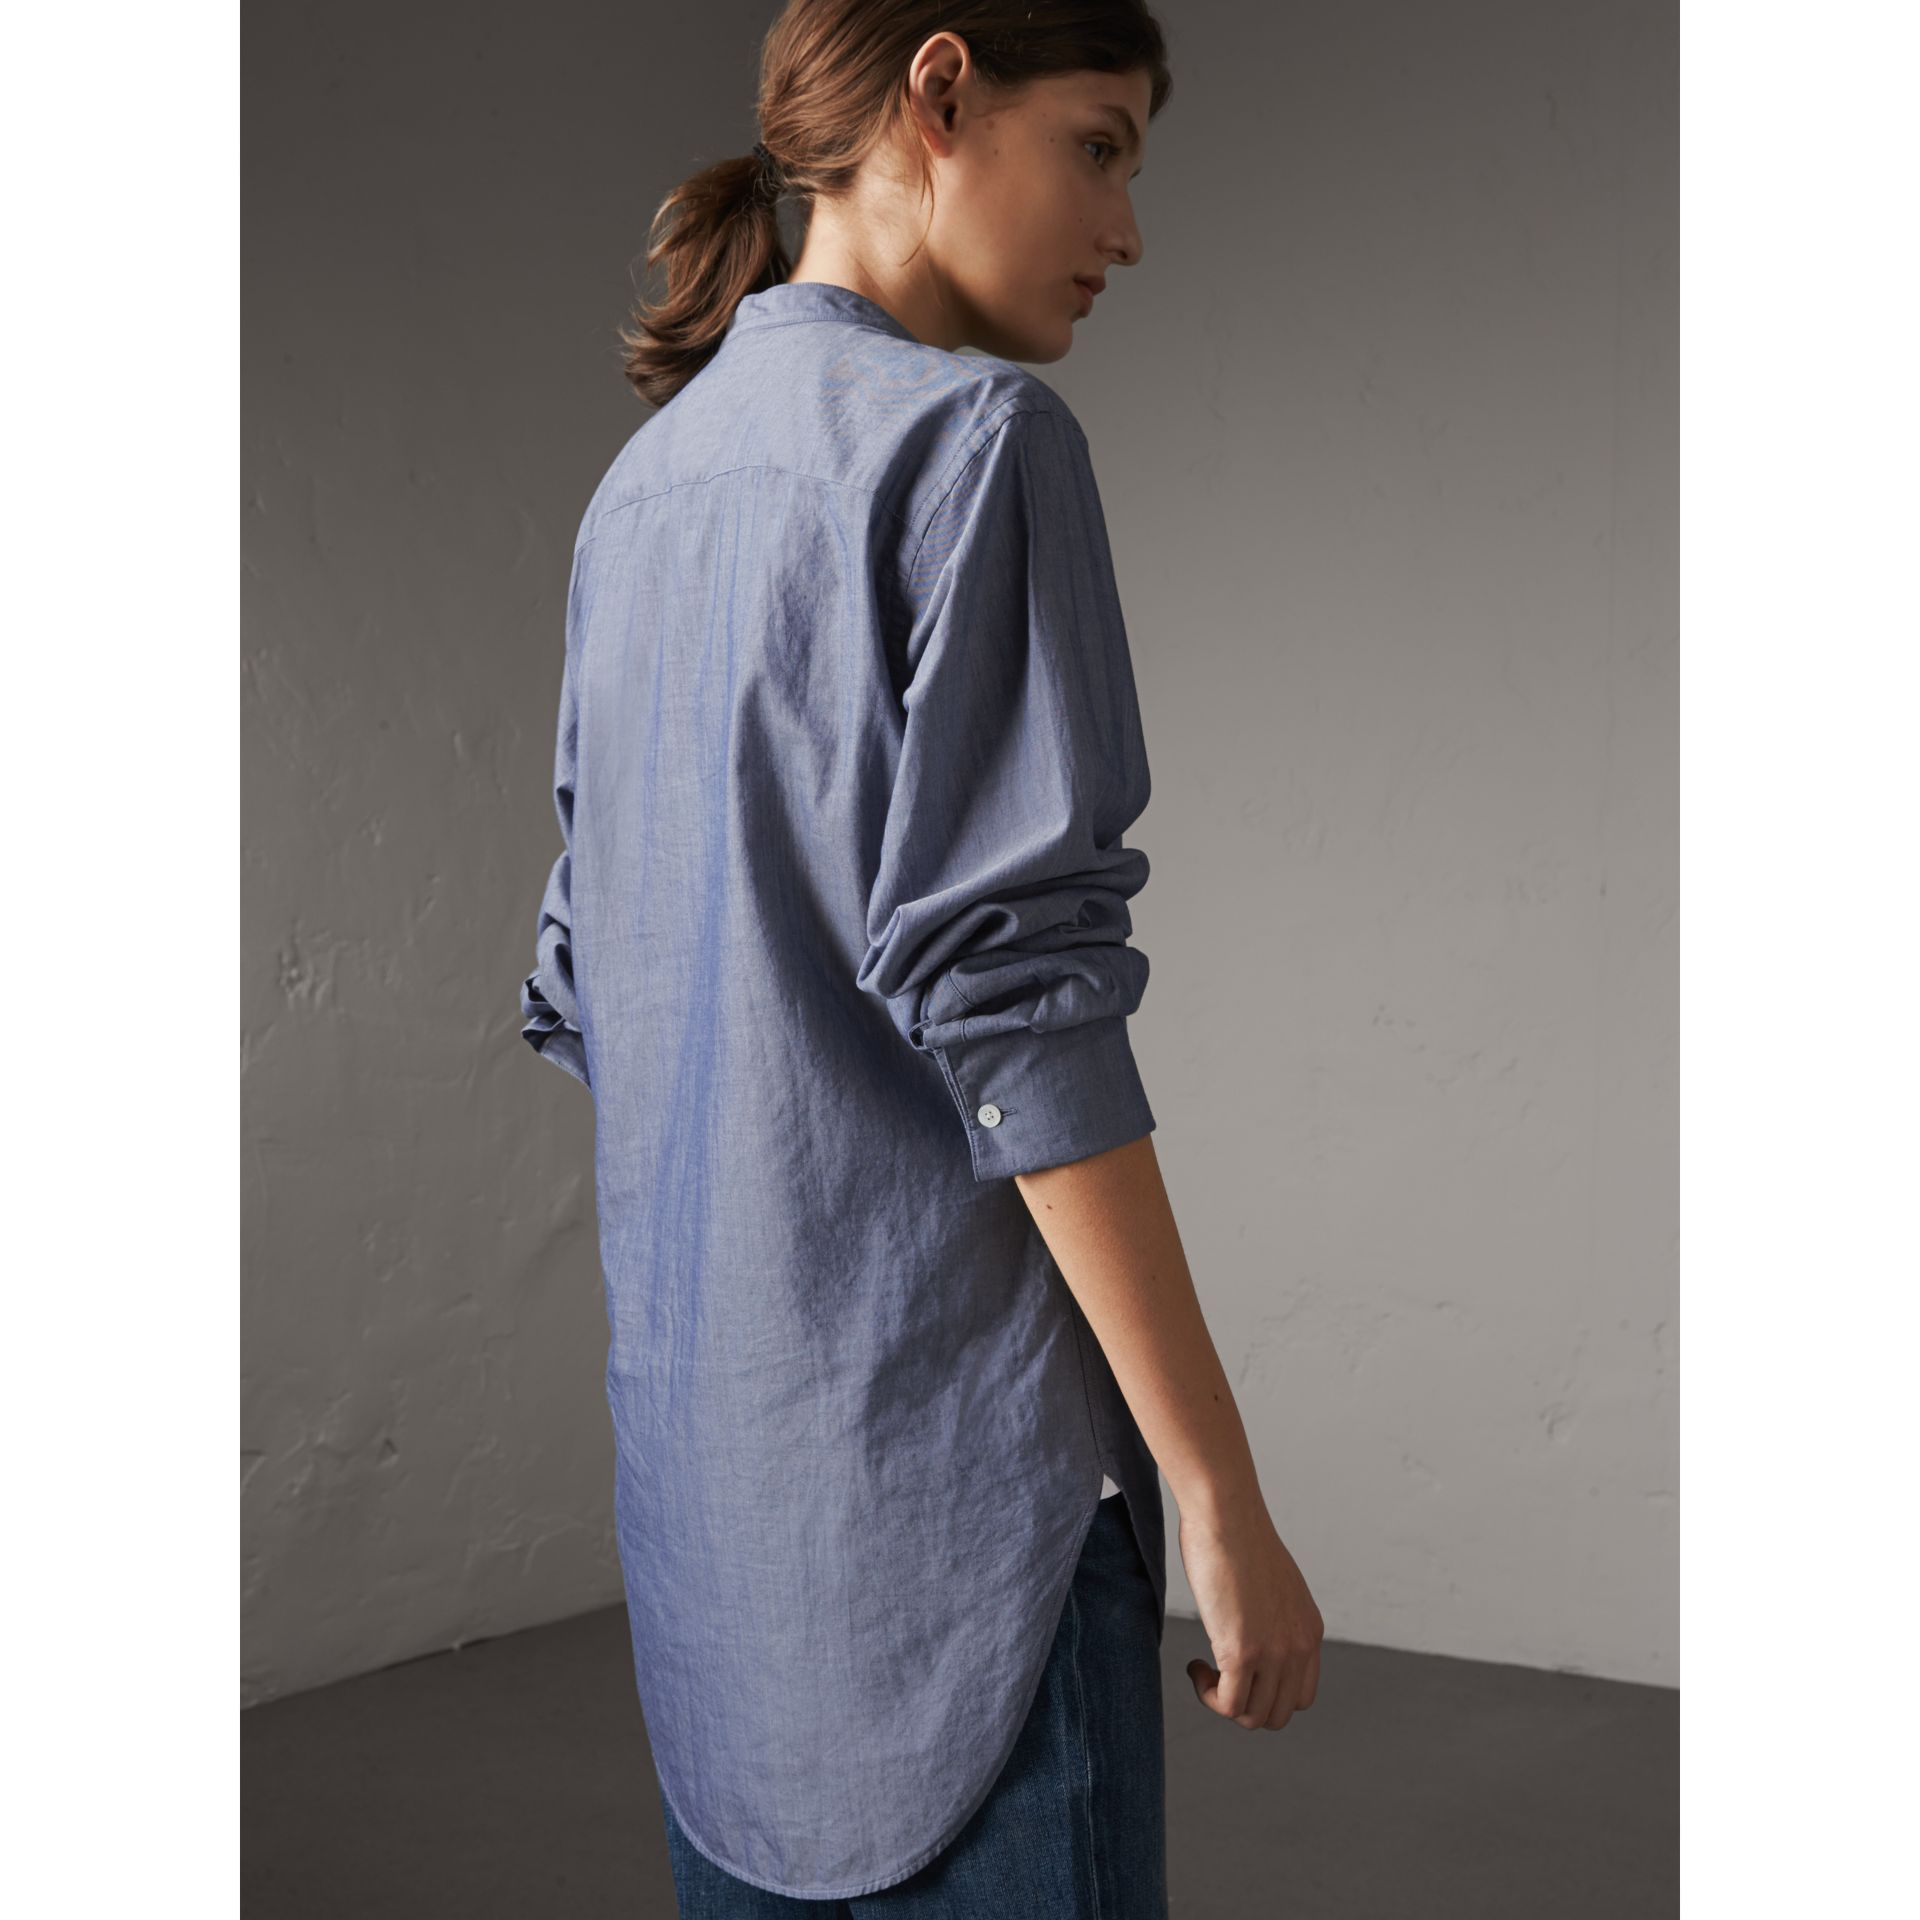 Unisex Grandad Collar Pleated Bib Cotton Shirt in Denim Blue - Women | Burberry Singapore - gallery image 5